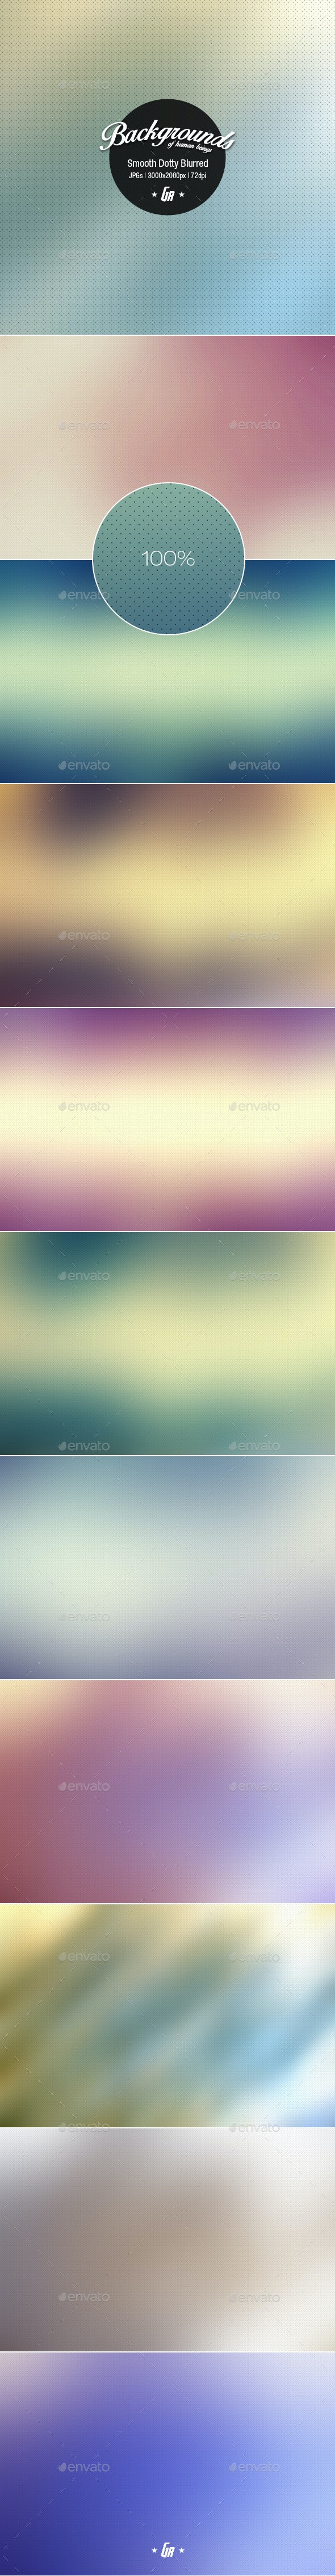 Smooth Dotty Blurred Backgrounds - Miscellaneous Backgrounds